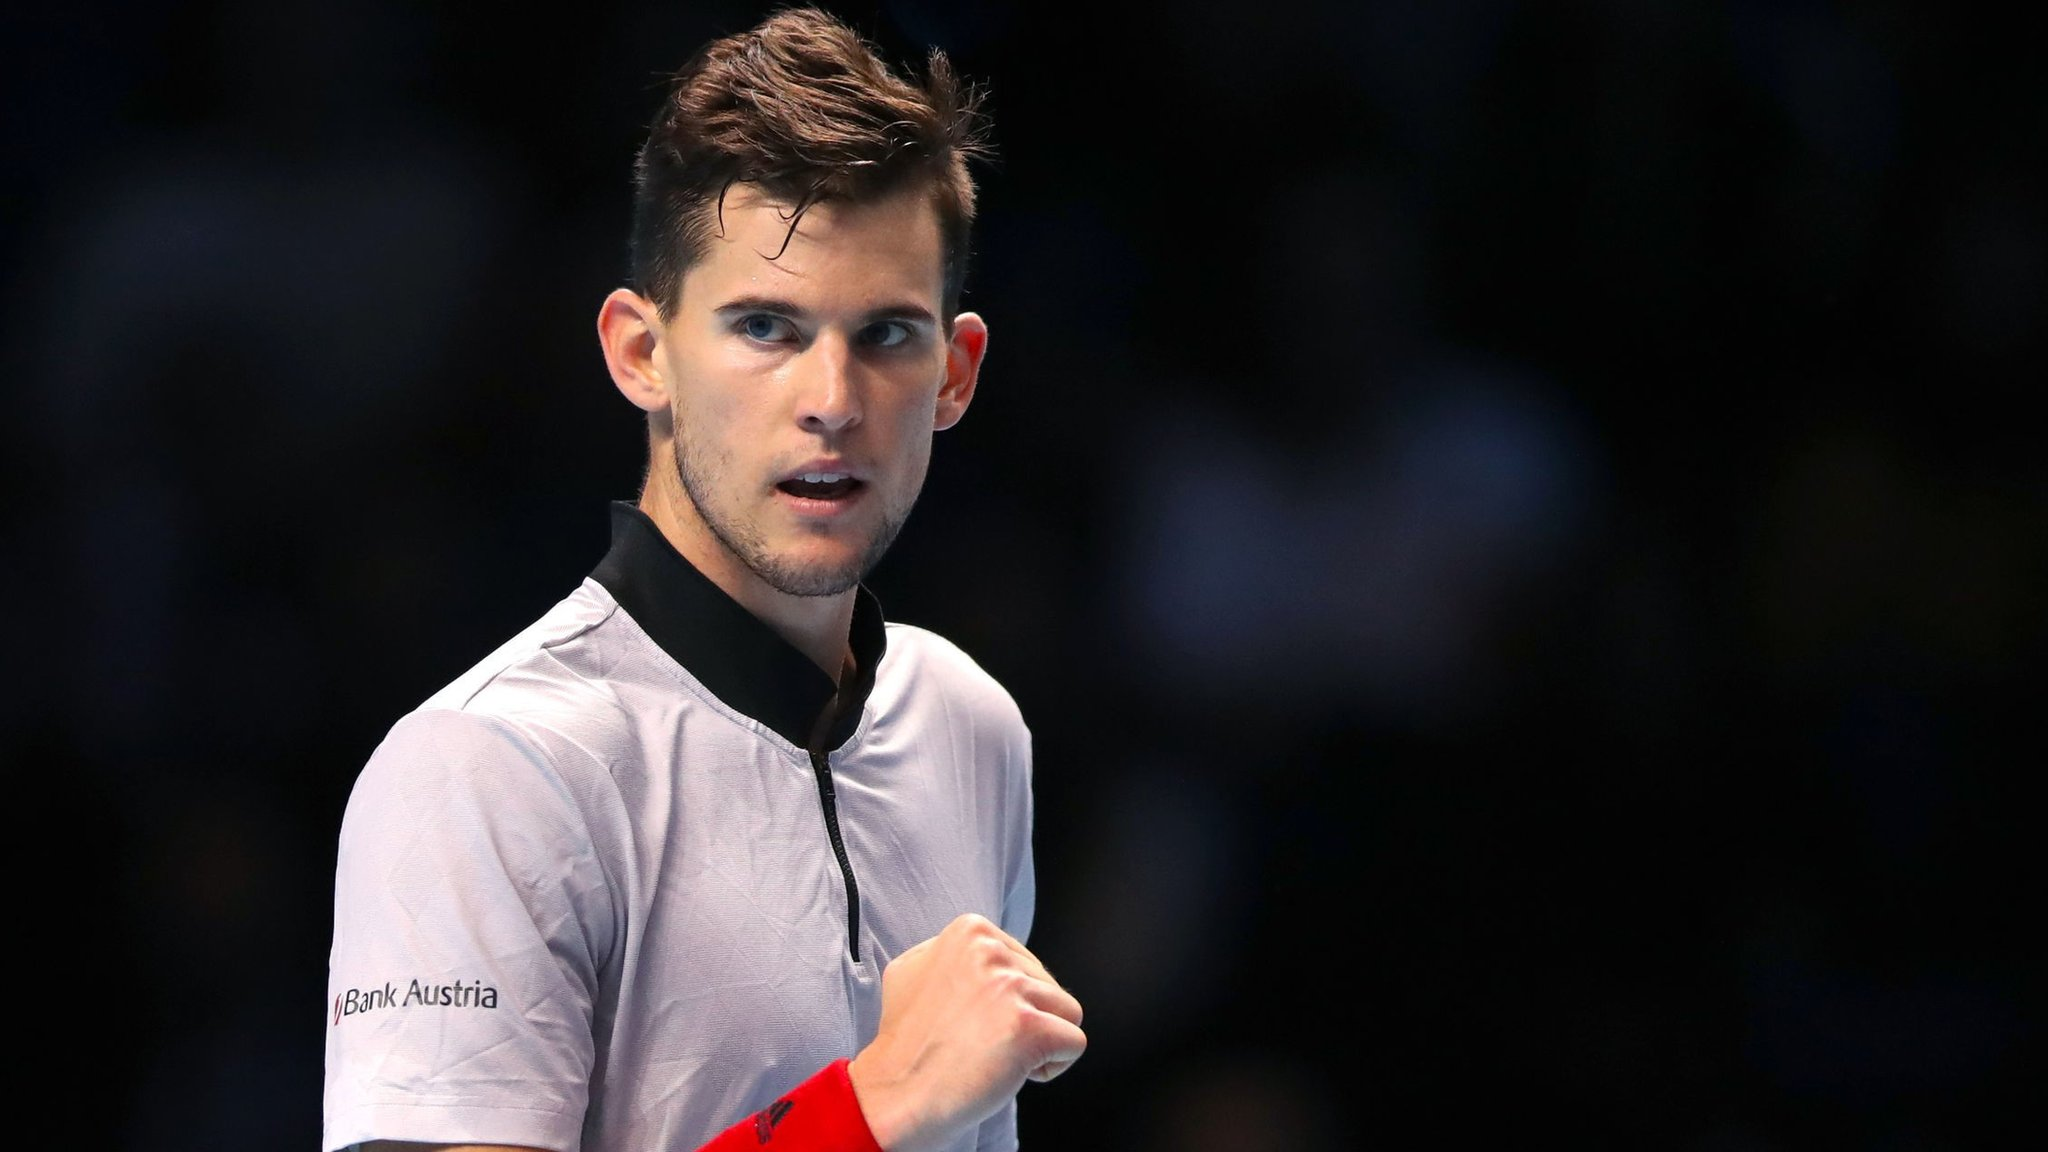 Thiem defeats Nishikori but both go out in London